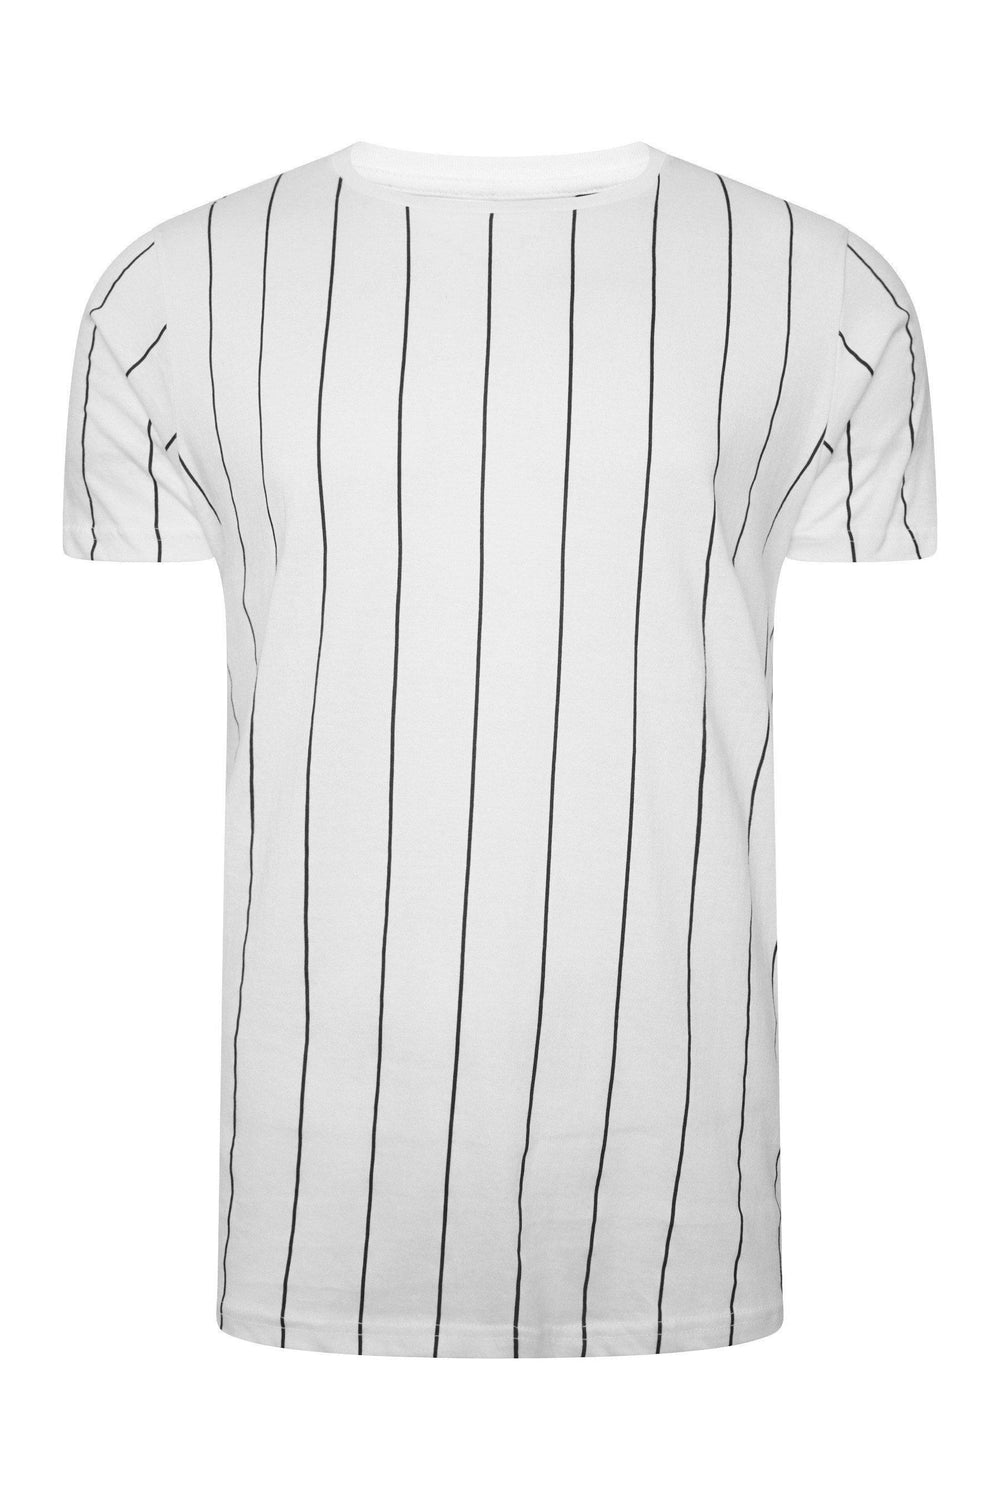 T-Shirts - Vertical Stripe T-Shirt White